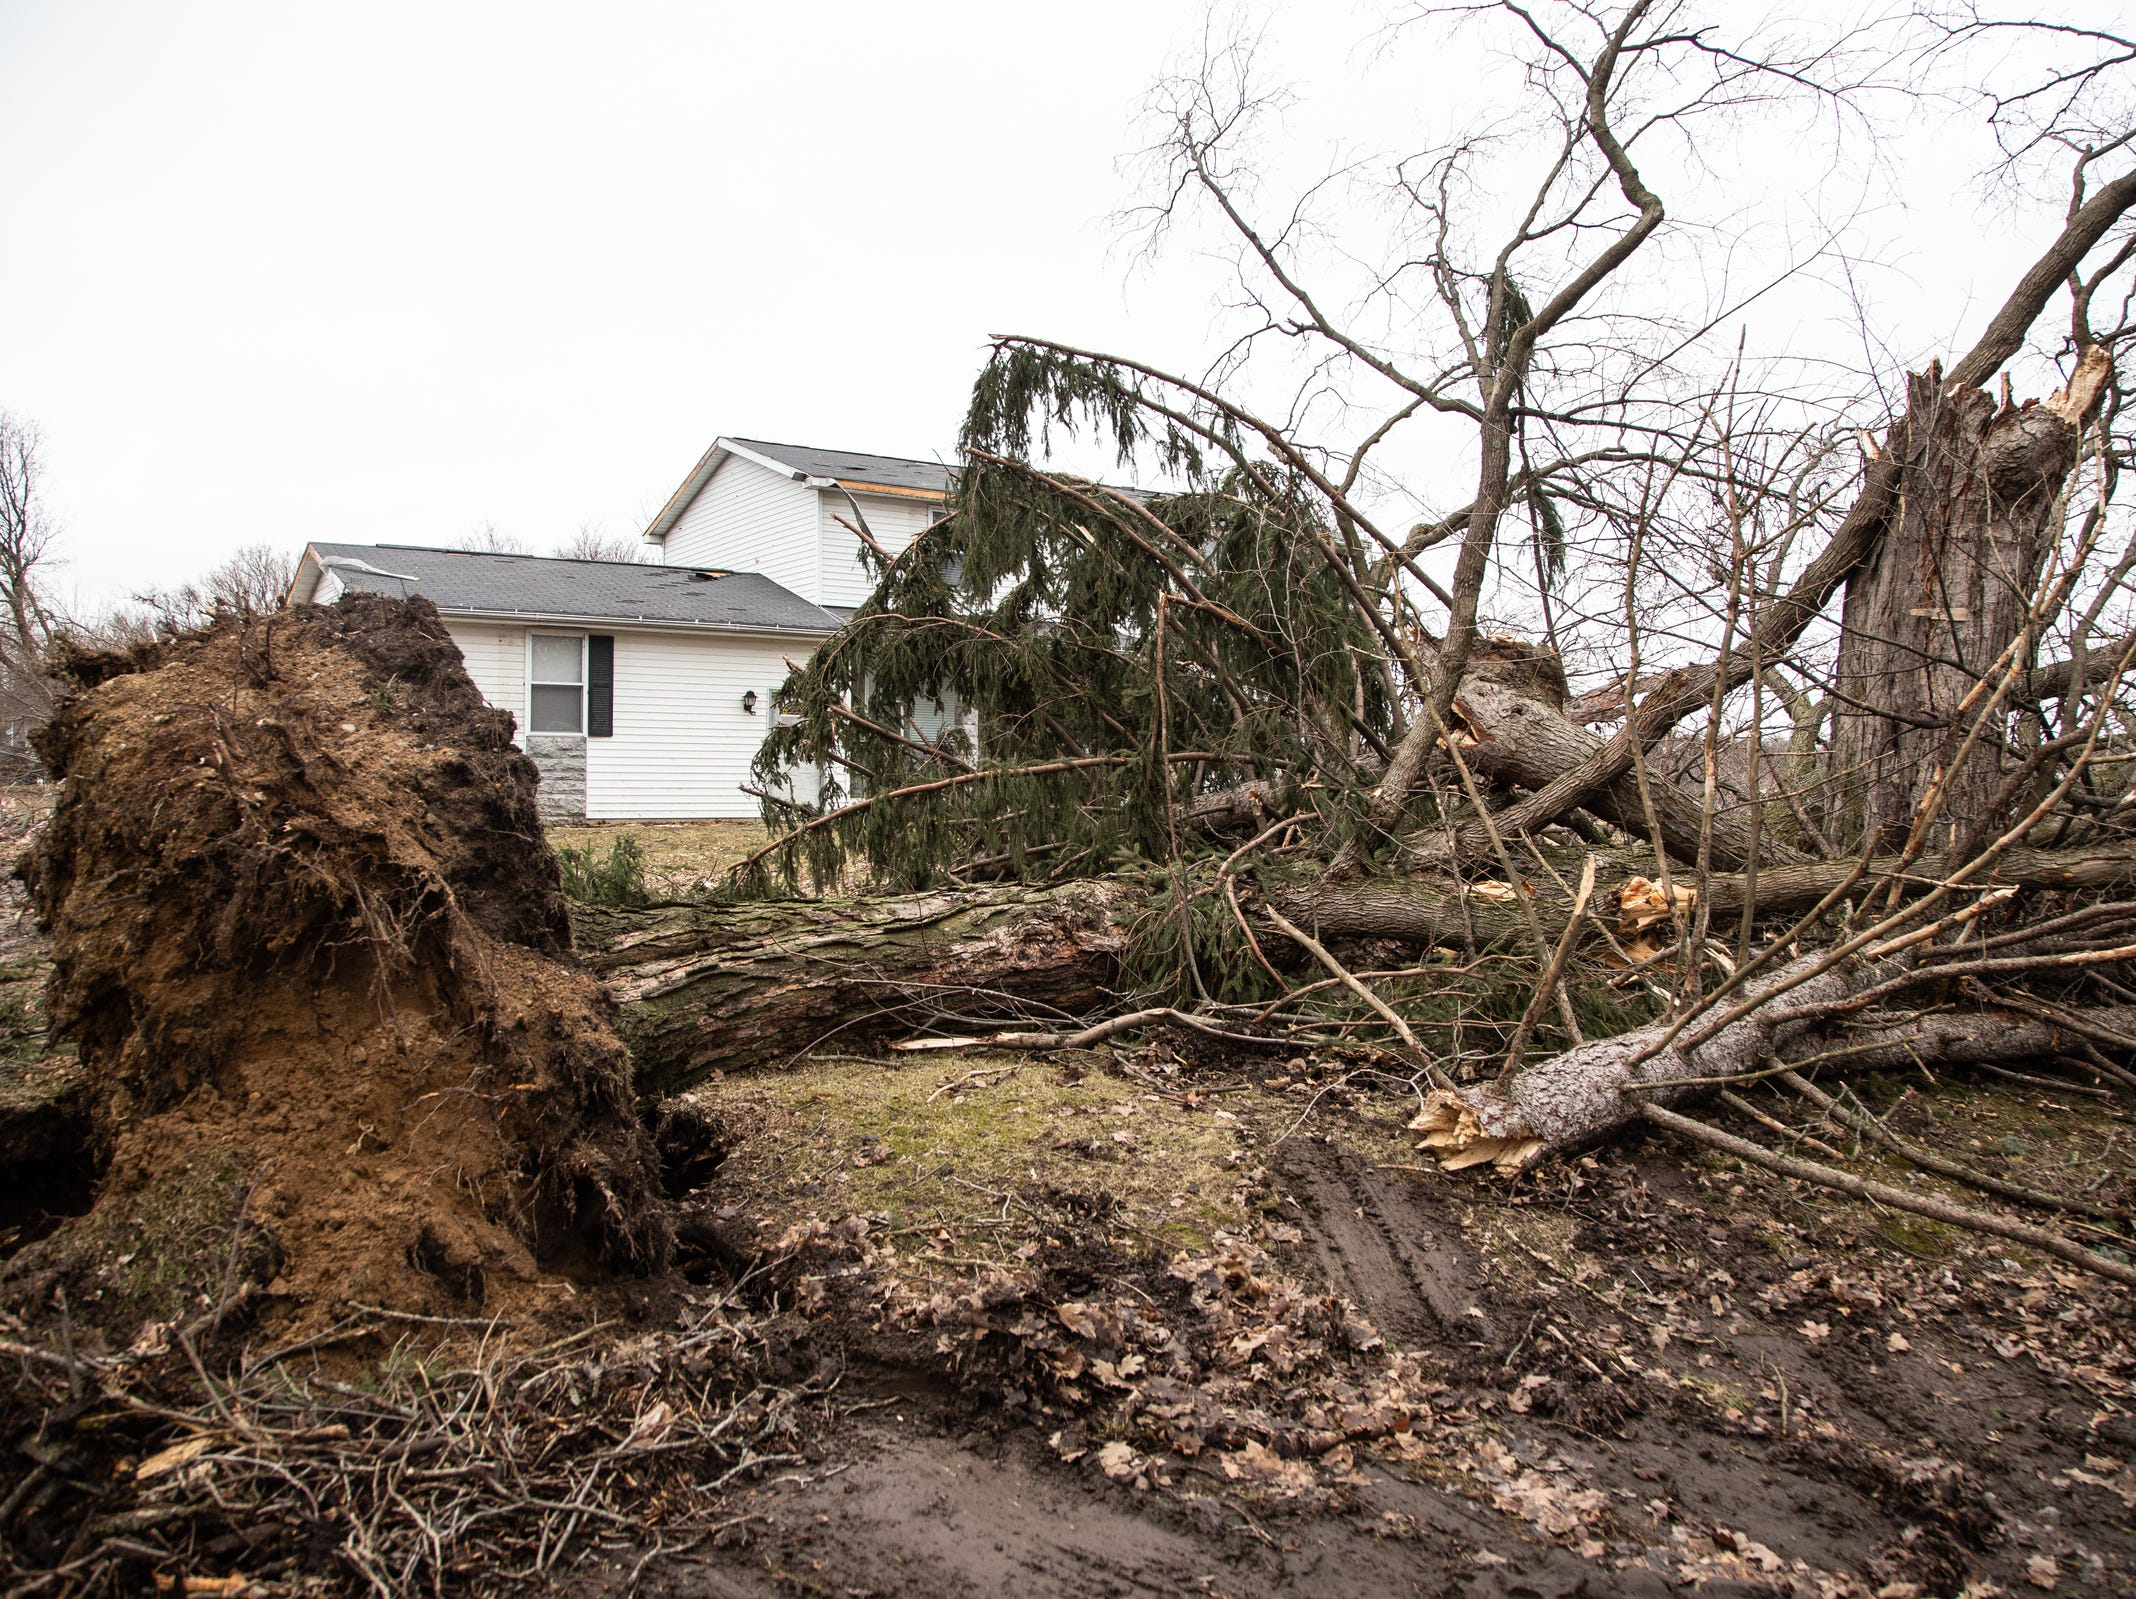 Uprooted trees are seen after a tornado came through Shiawassee County overnight on Newburg Rd. in Bancroft on Friday, March 15, 2019.